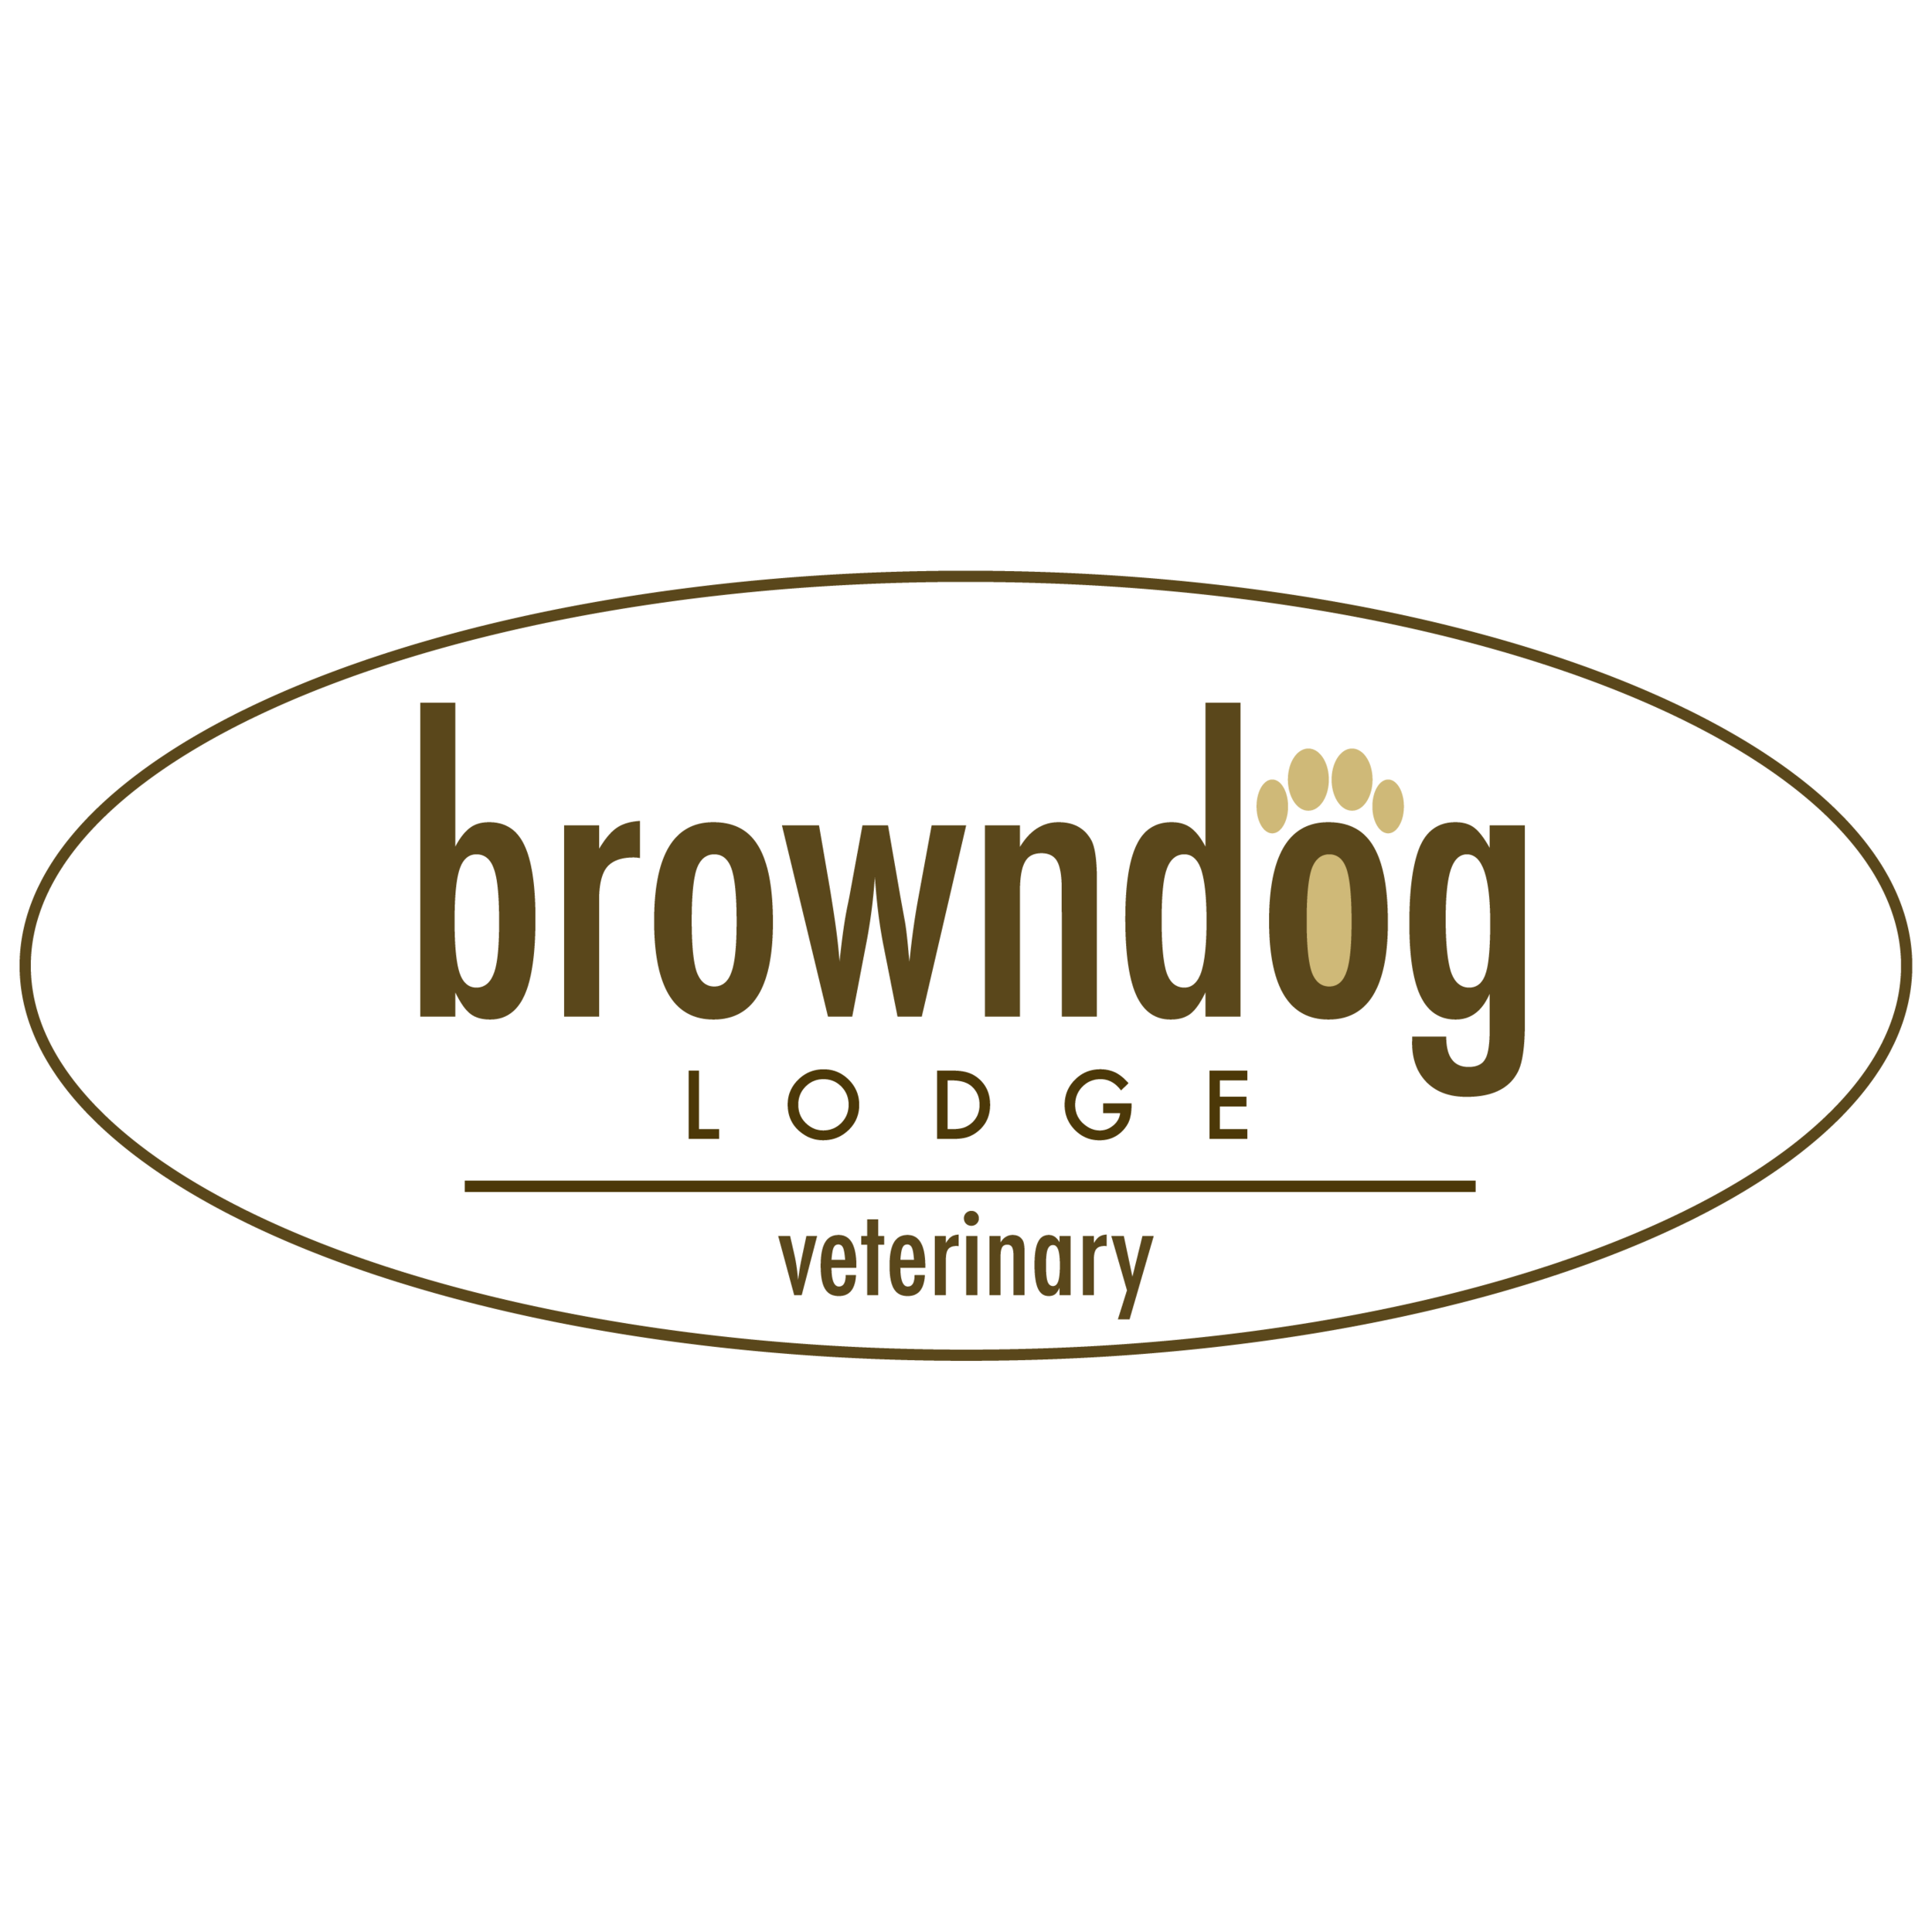 BrownDog Lodge Veterinary